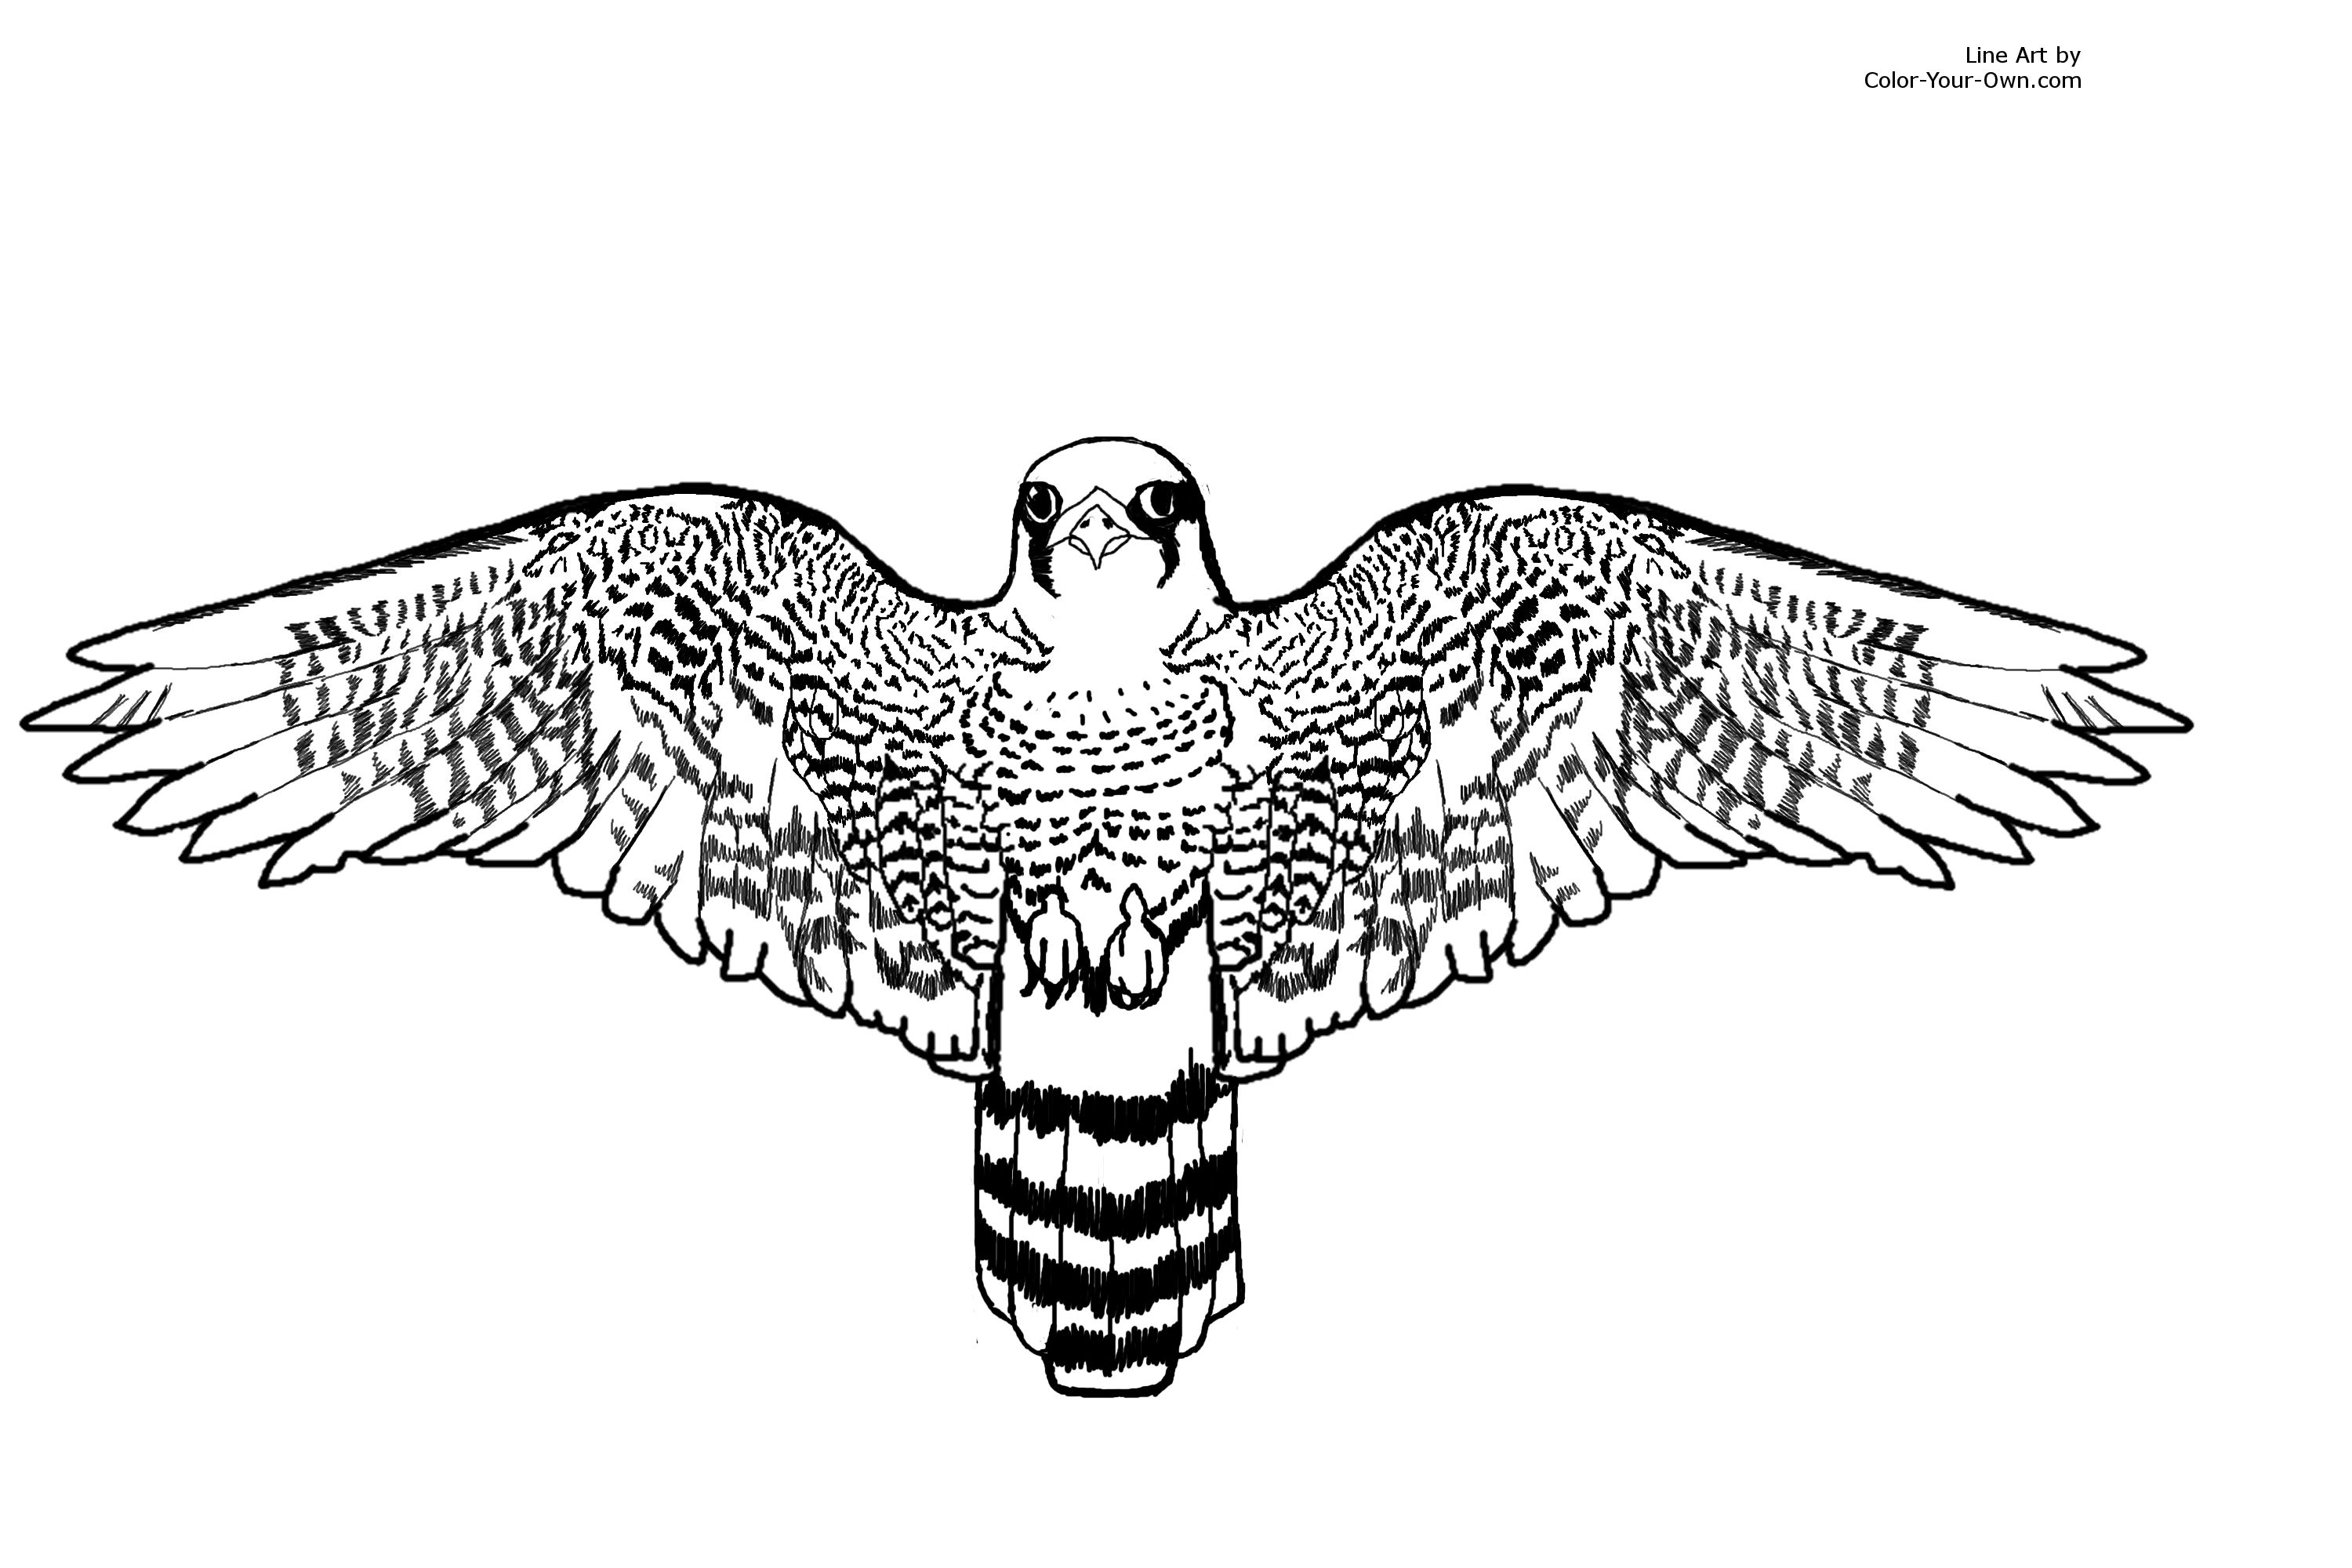 Coloring page x wing - For The 8 5 X 11 Printable Size Click Here Return To The Coloring Pages Index